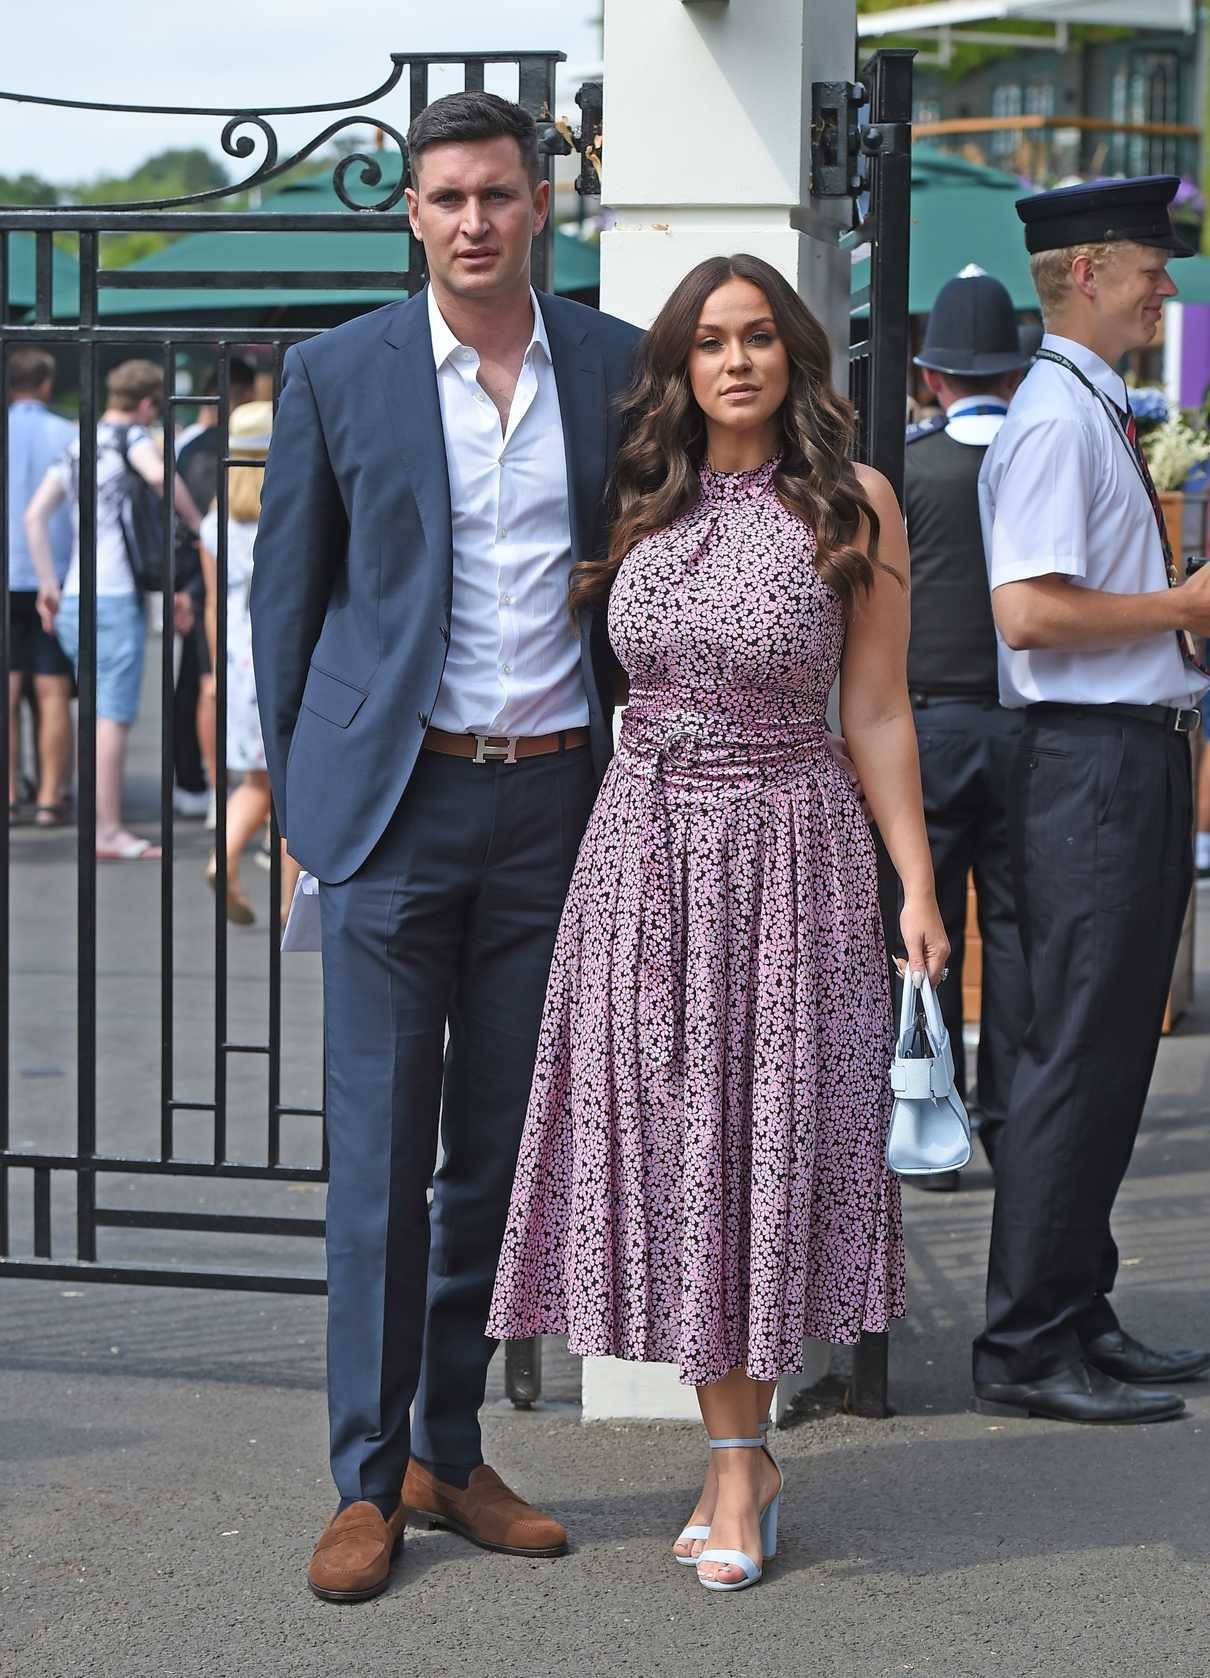 Vicky Pattison Arrives with Her Fiance John Noble at Wimbledon Tennis Tournament in London 07/09/2018-4